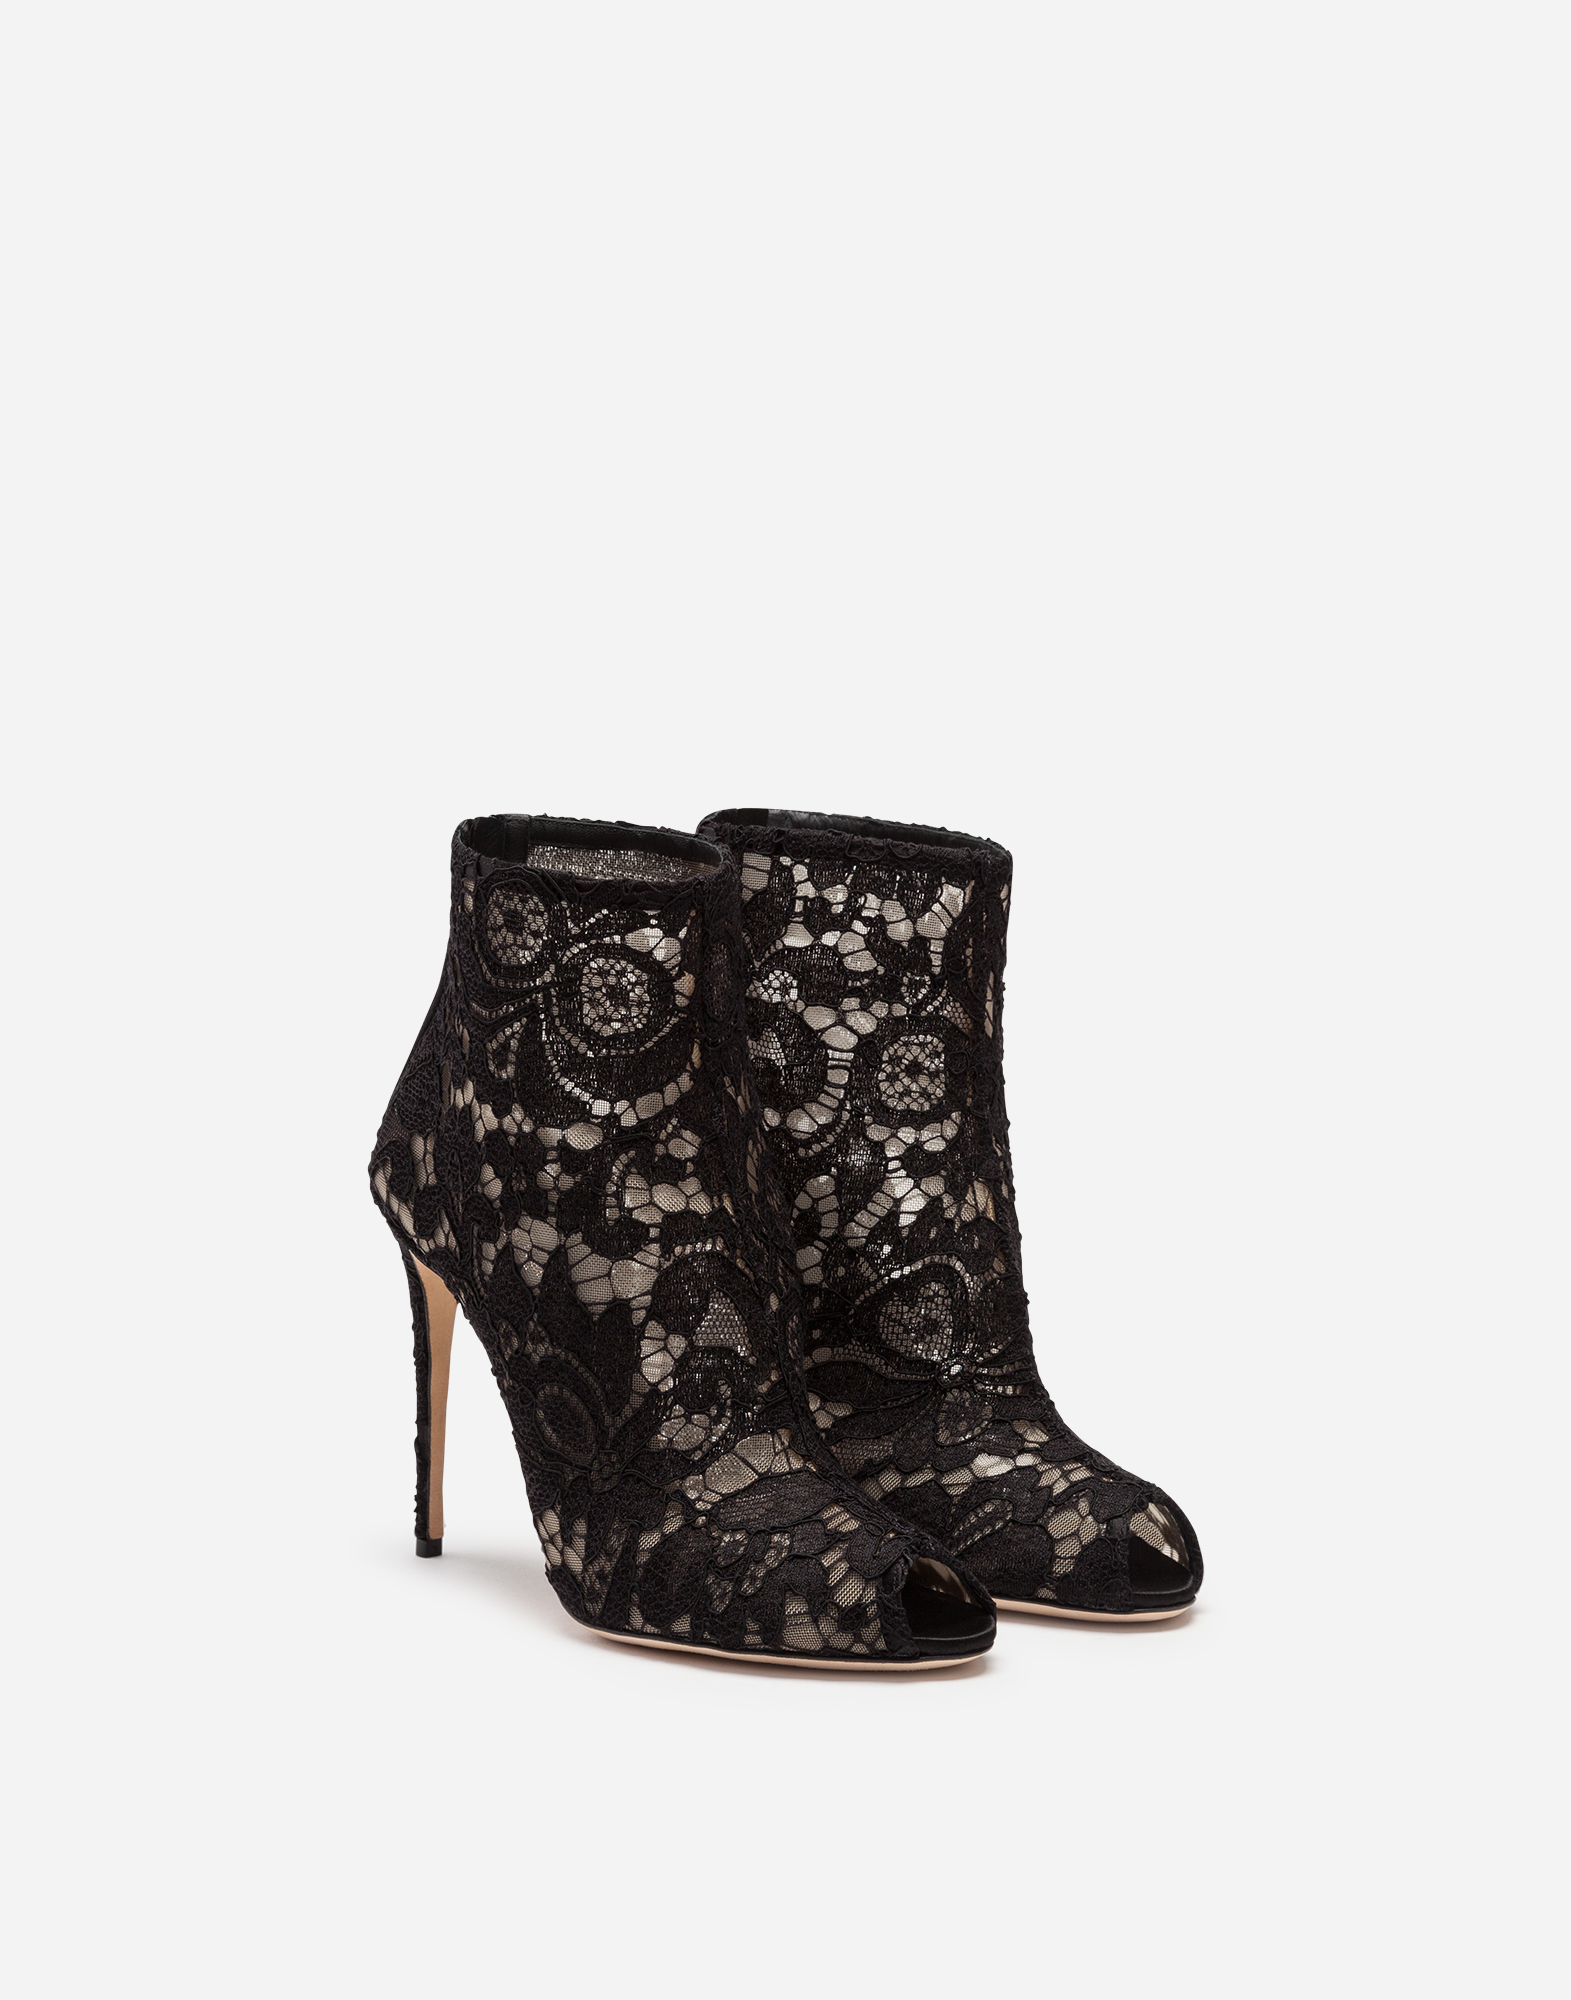 Dolce&Gabbana BOOTS IN LACE